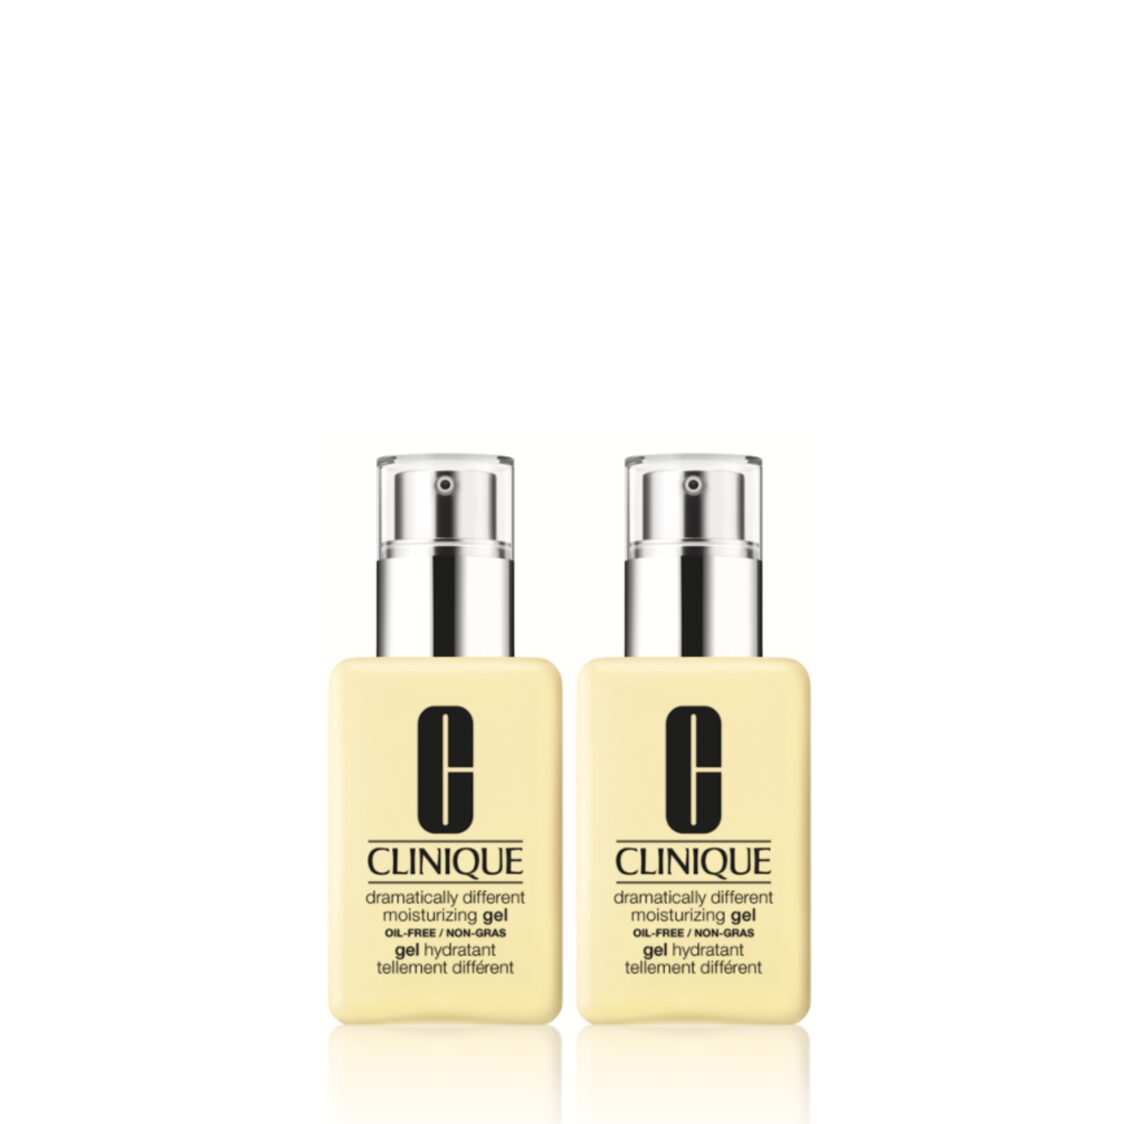 Clinique Dramatically Different Moisturizing Gel Duo worth 120